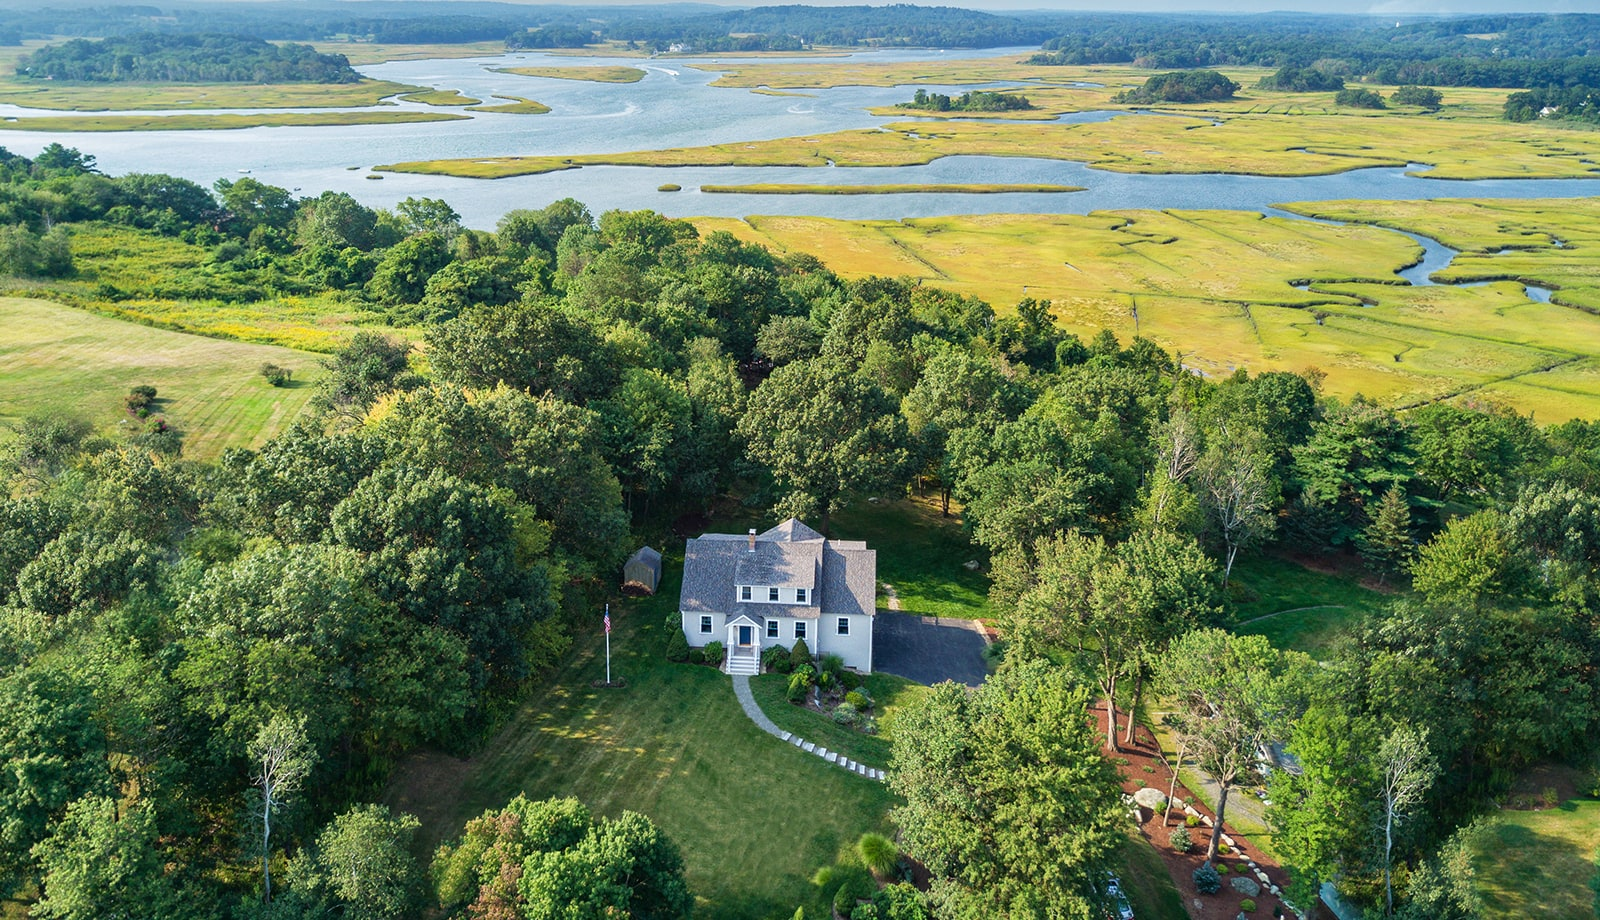 Shingle Cape On Marsh Ipswich MA Aerial